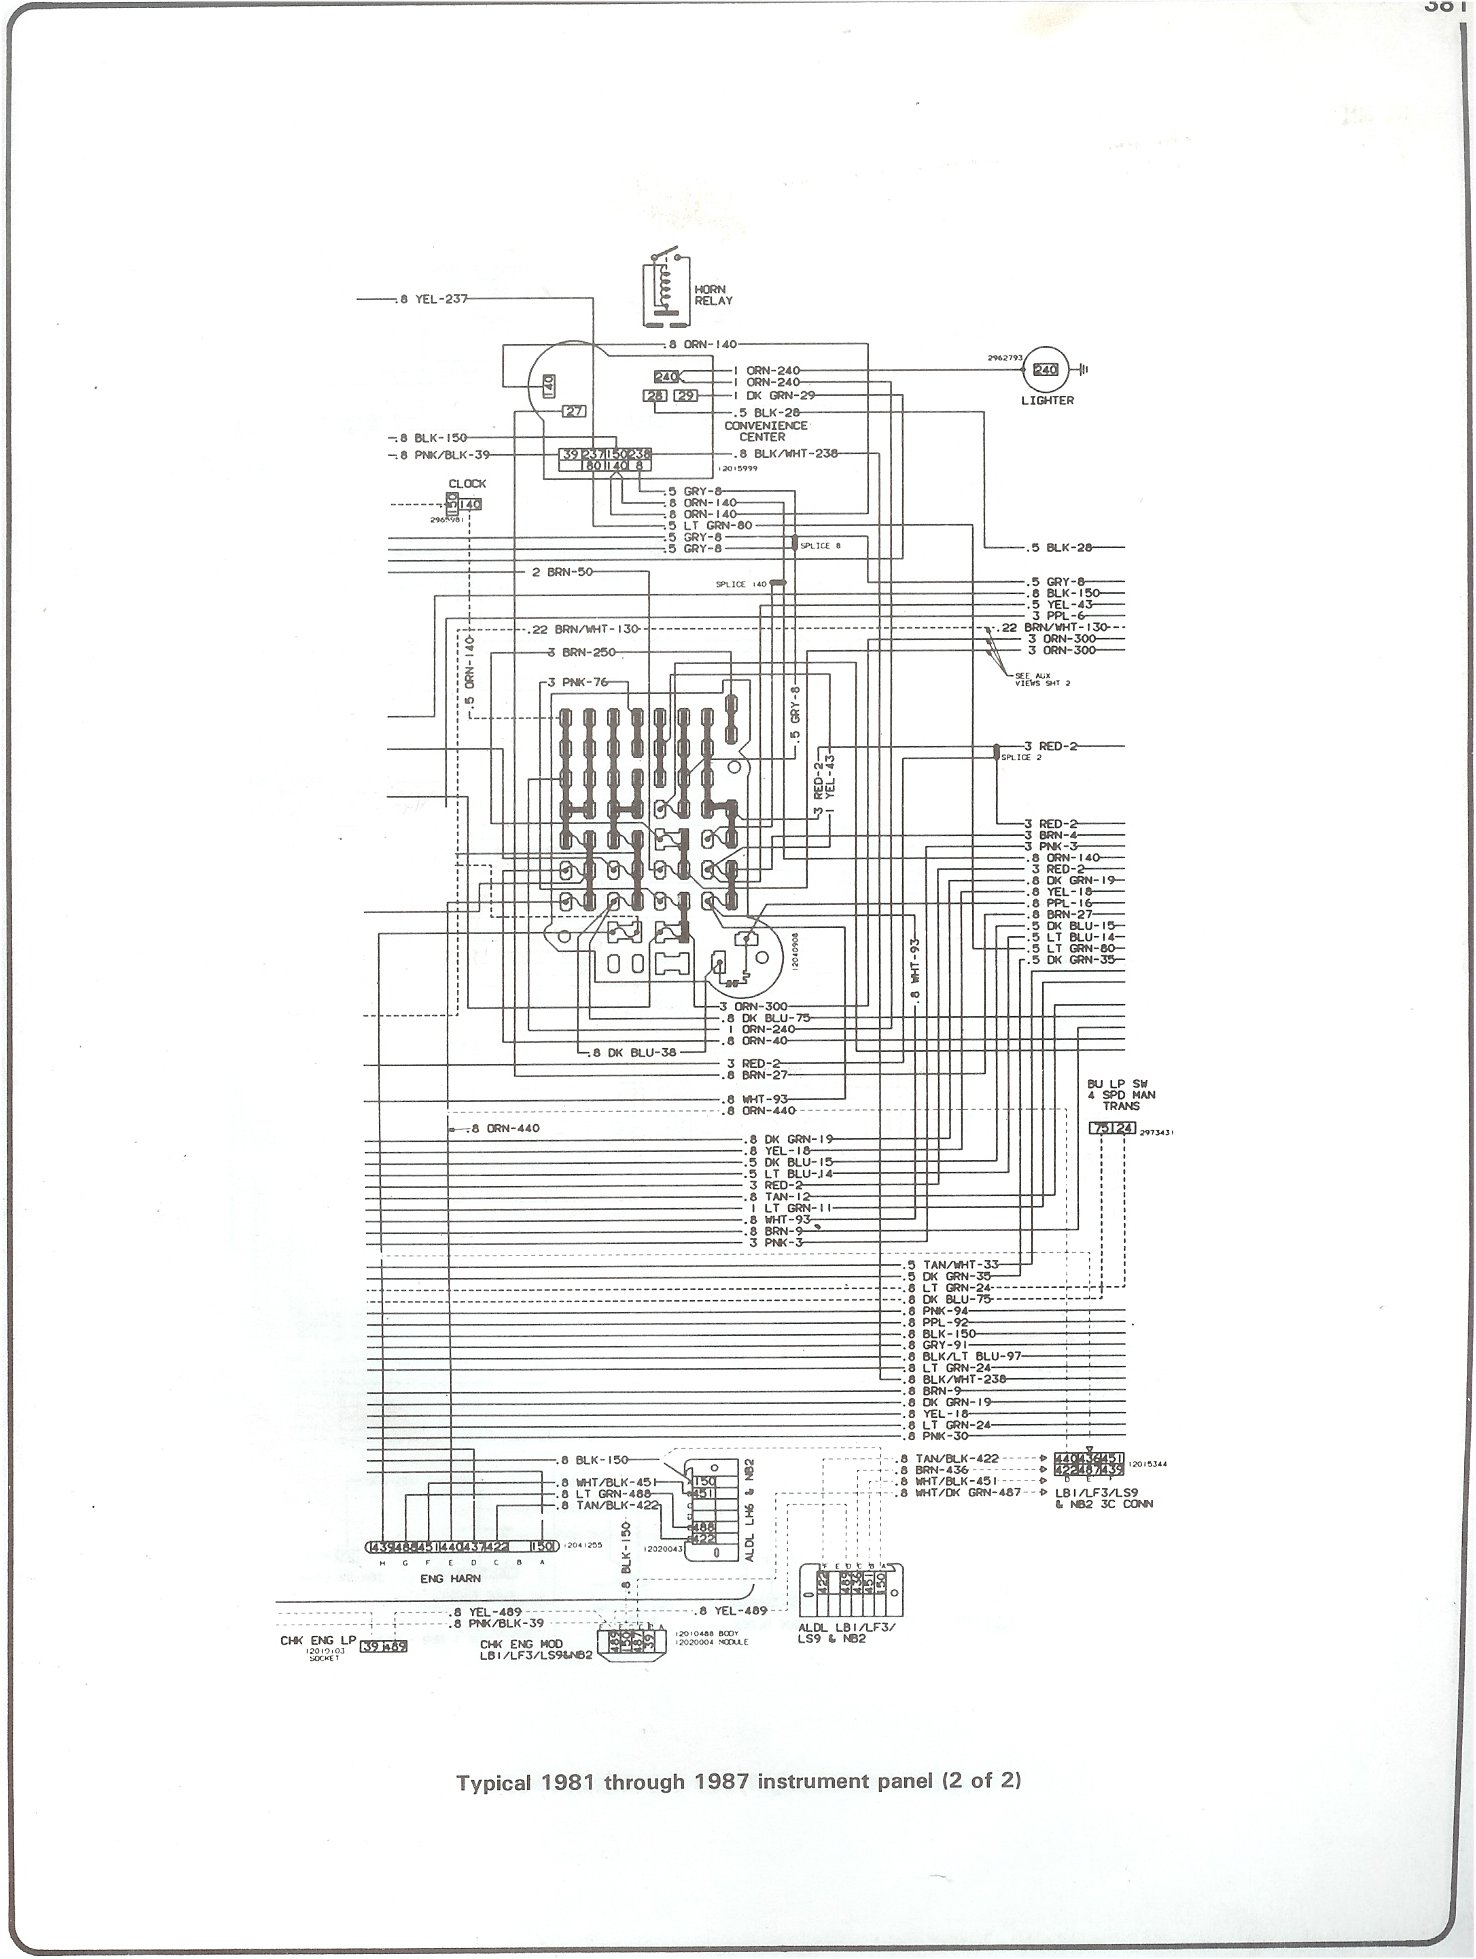 brake light switch wiring diagram? - blazer forum - chevy ... 81 k 5 wiring diagram 1975 chevy k 5 wiring diagram #2